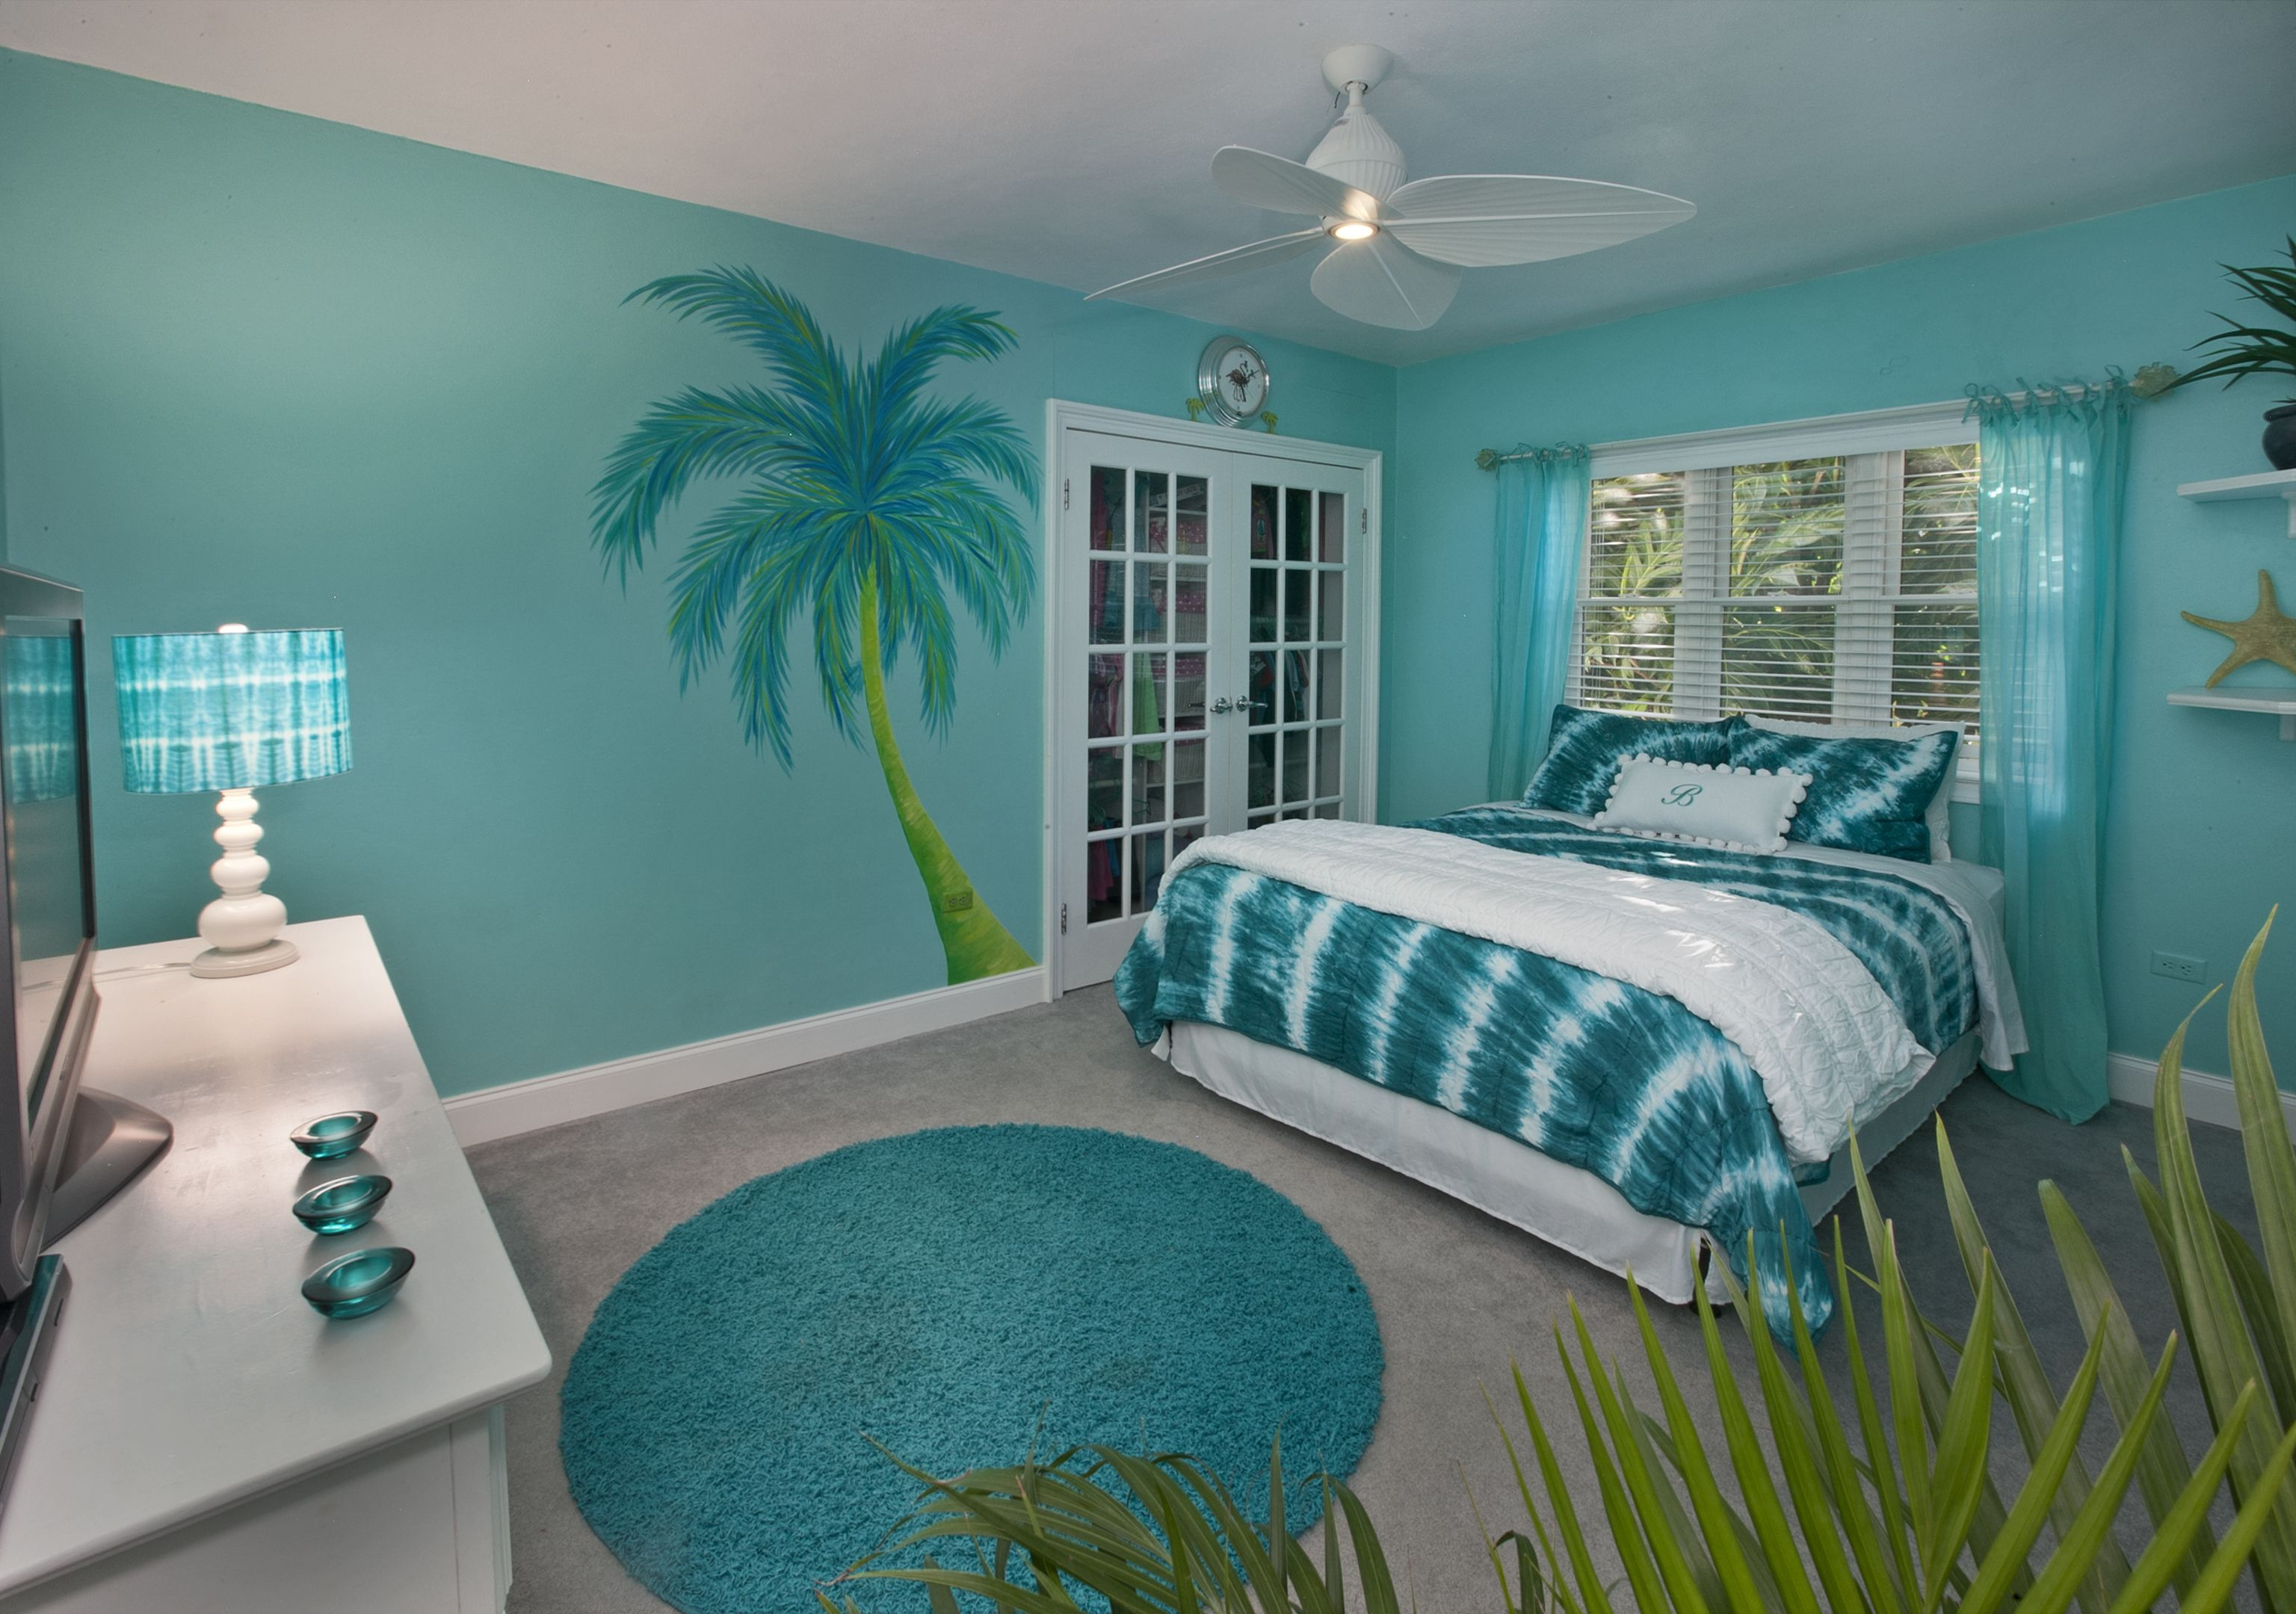 My Dream Color For A Bedroom With Images Turquoise Room